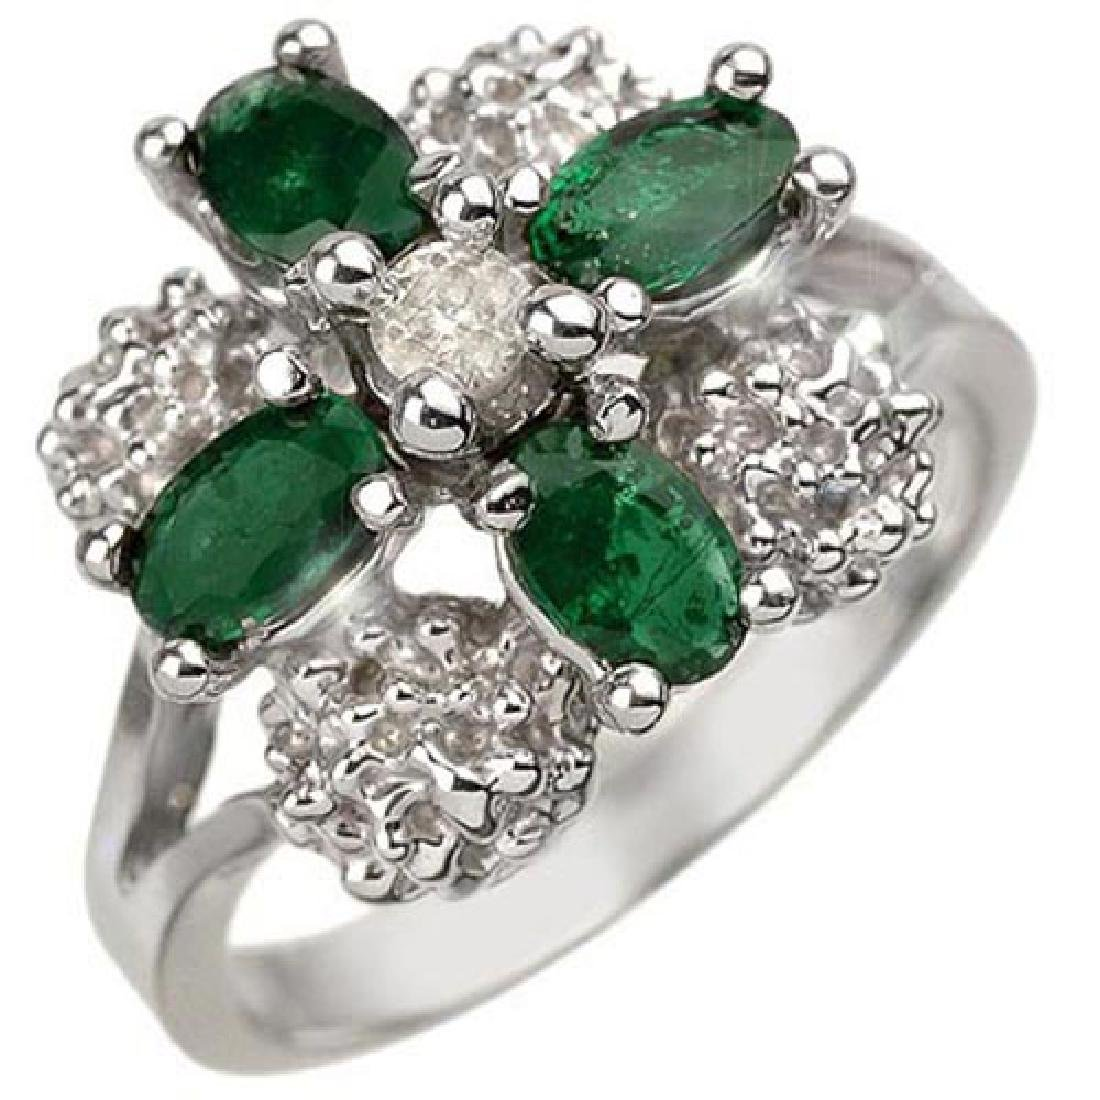 1.08 CTW Emerald & Diamond Ring 10K White Gold